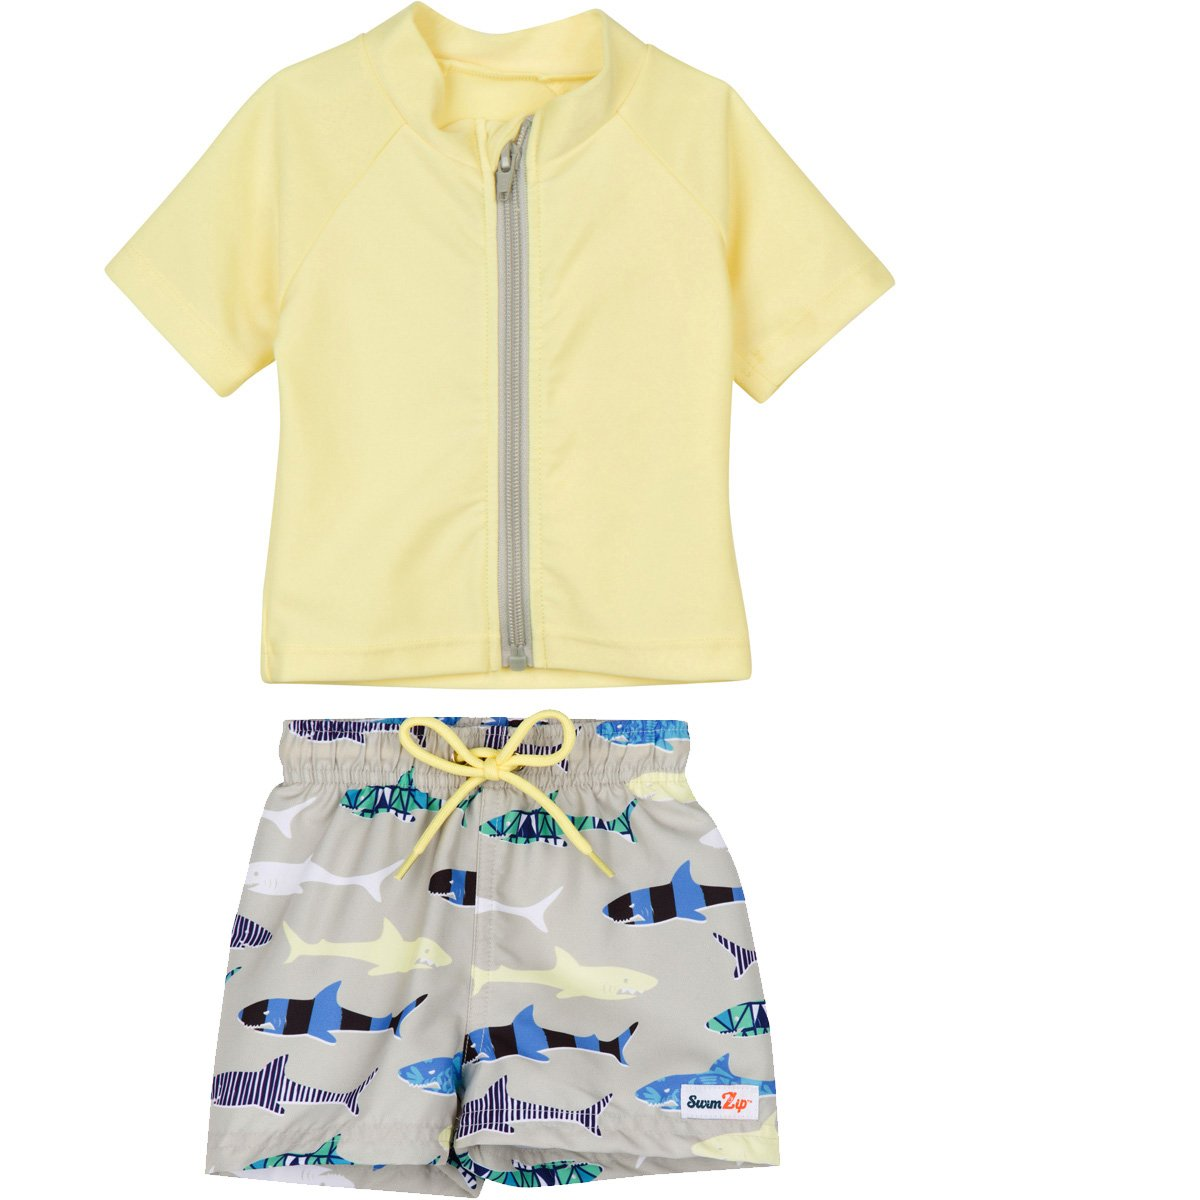 SwimZip Baby Boy Zipper Short Sleeve Rash Guard Swimsuit Set Shark Feast Yellow